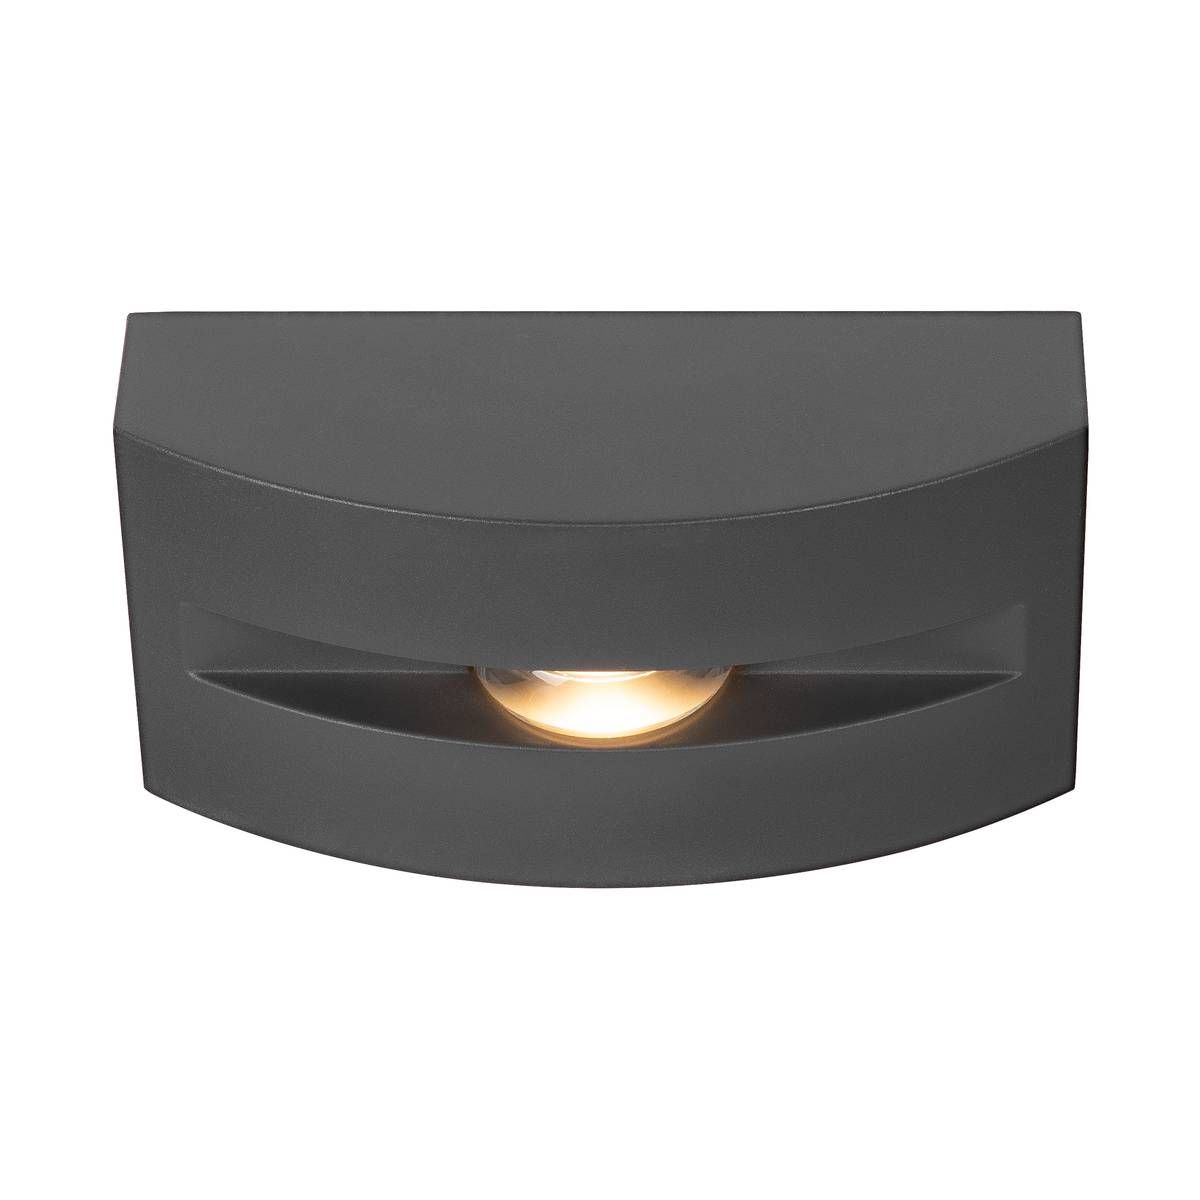 SLV buiten wandlamp Out-Beam Frame cw - antraciet